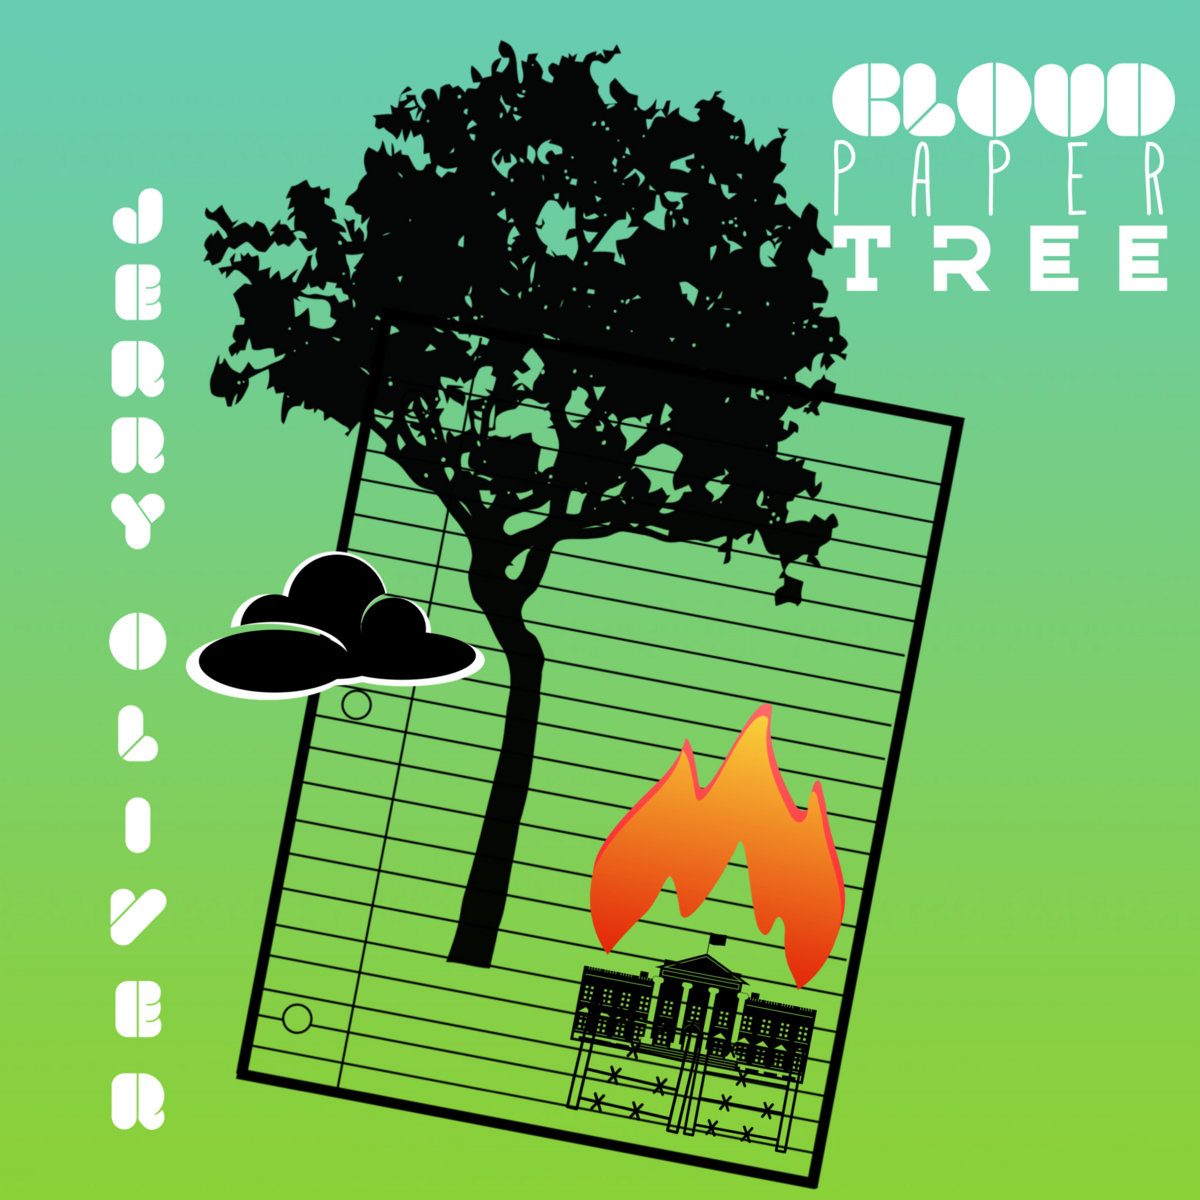 Cloud Paper Tree by Jerry Oliver